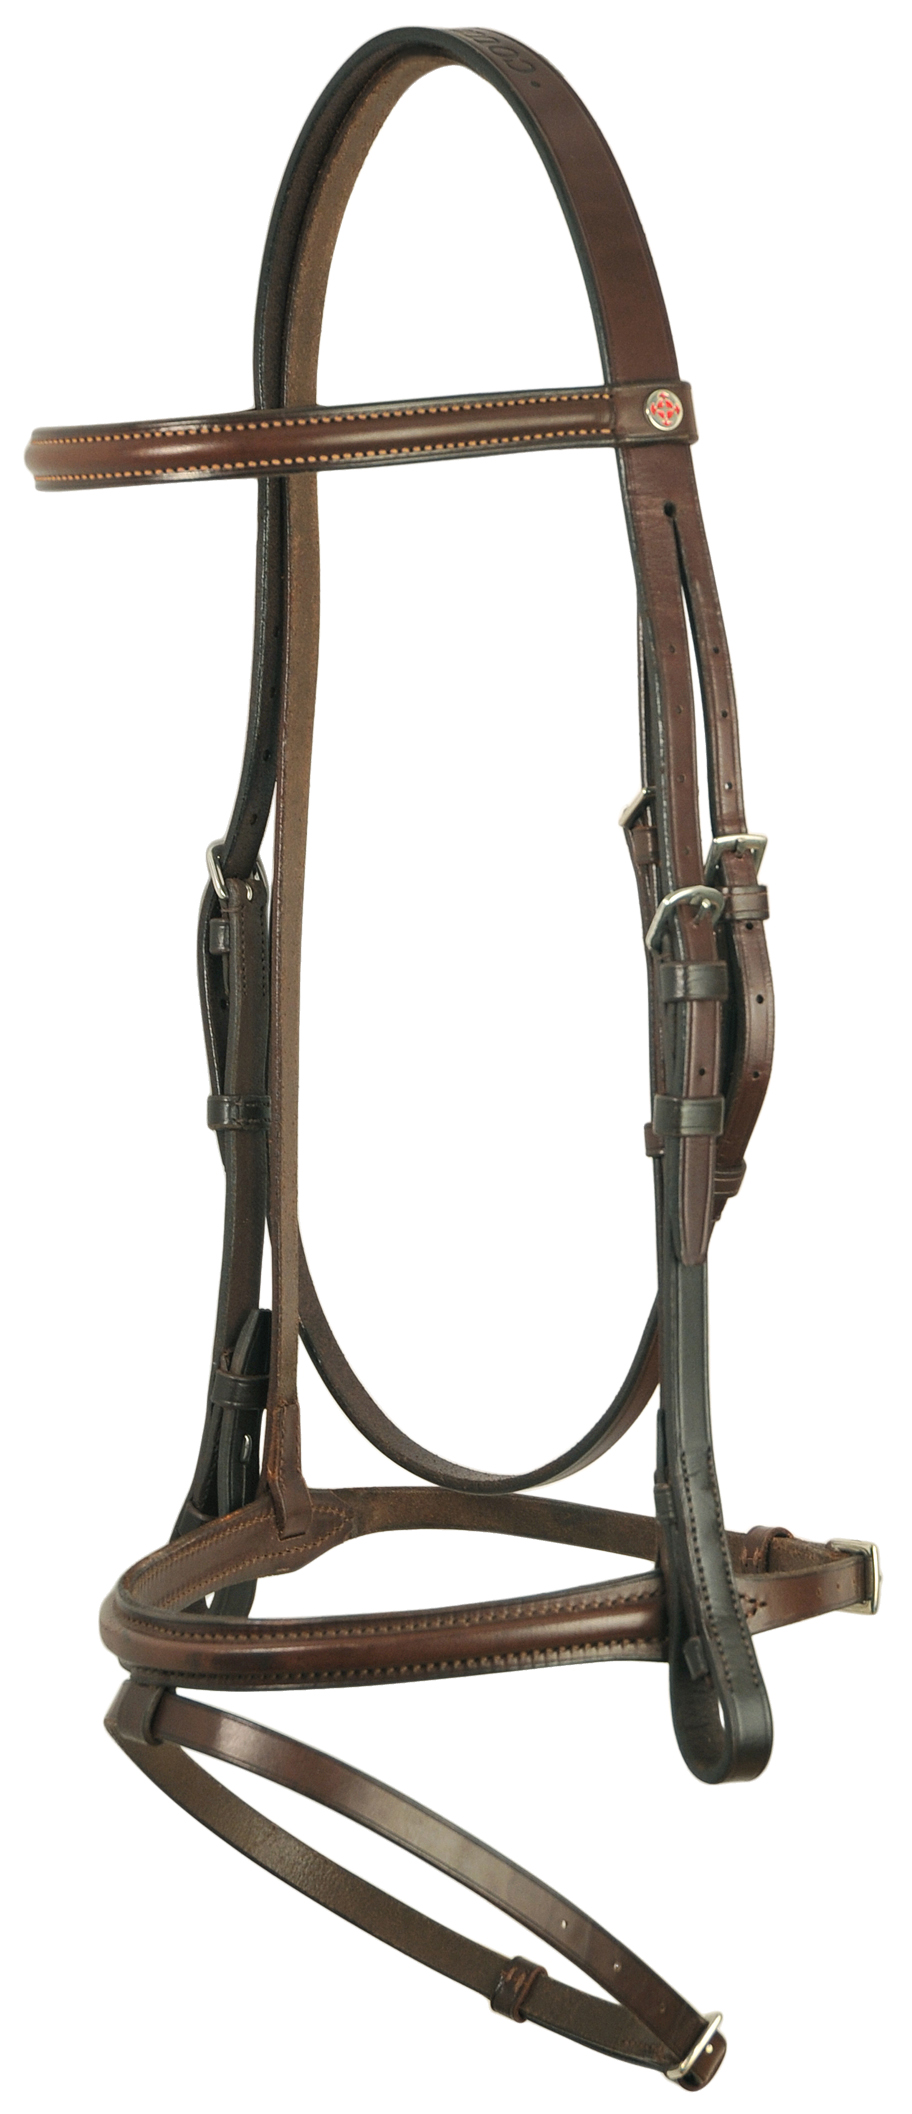 Courbette Premium Plain Raised Dressage Bridle with Flash Noseband - Less Reins